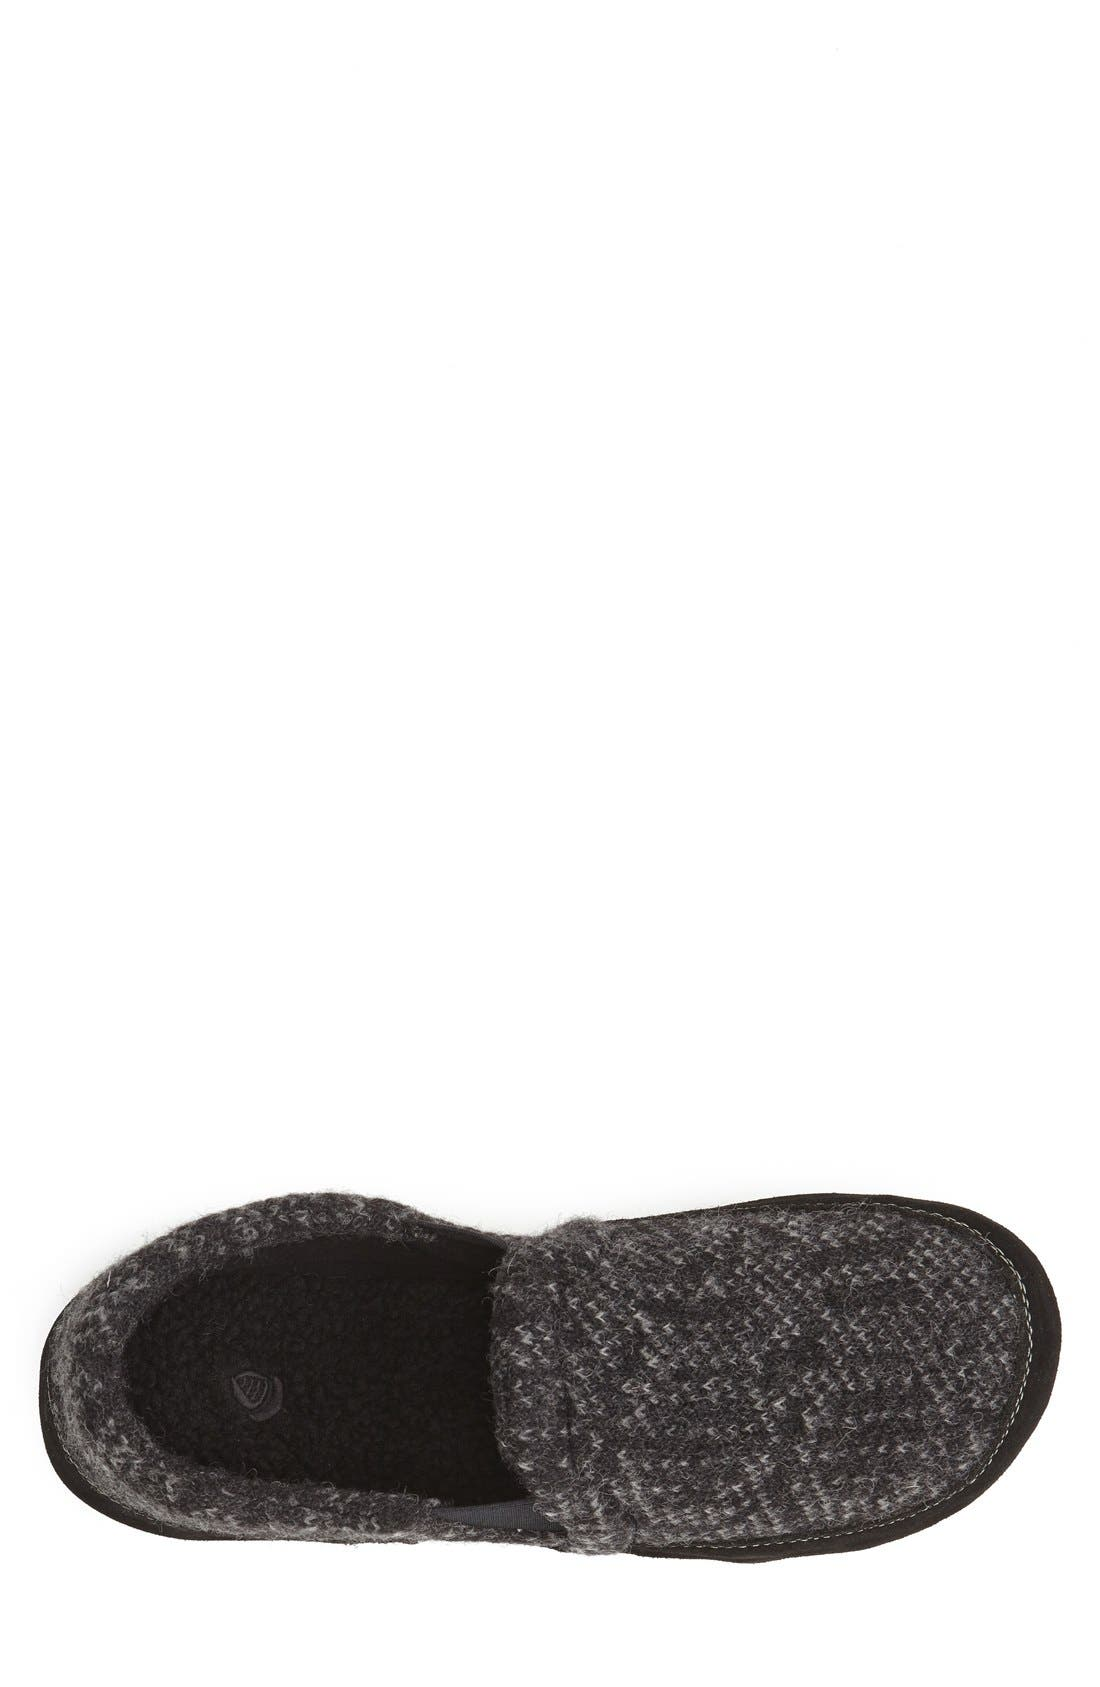 'Fave' Slipper,                             Alternate thumbnail 3, color,                             CHARCOAL TWEED